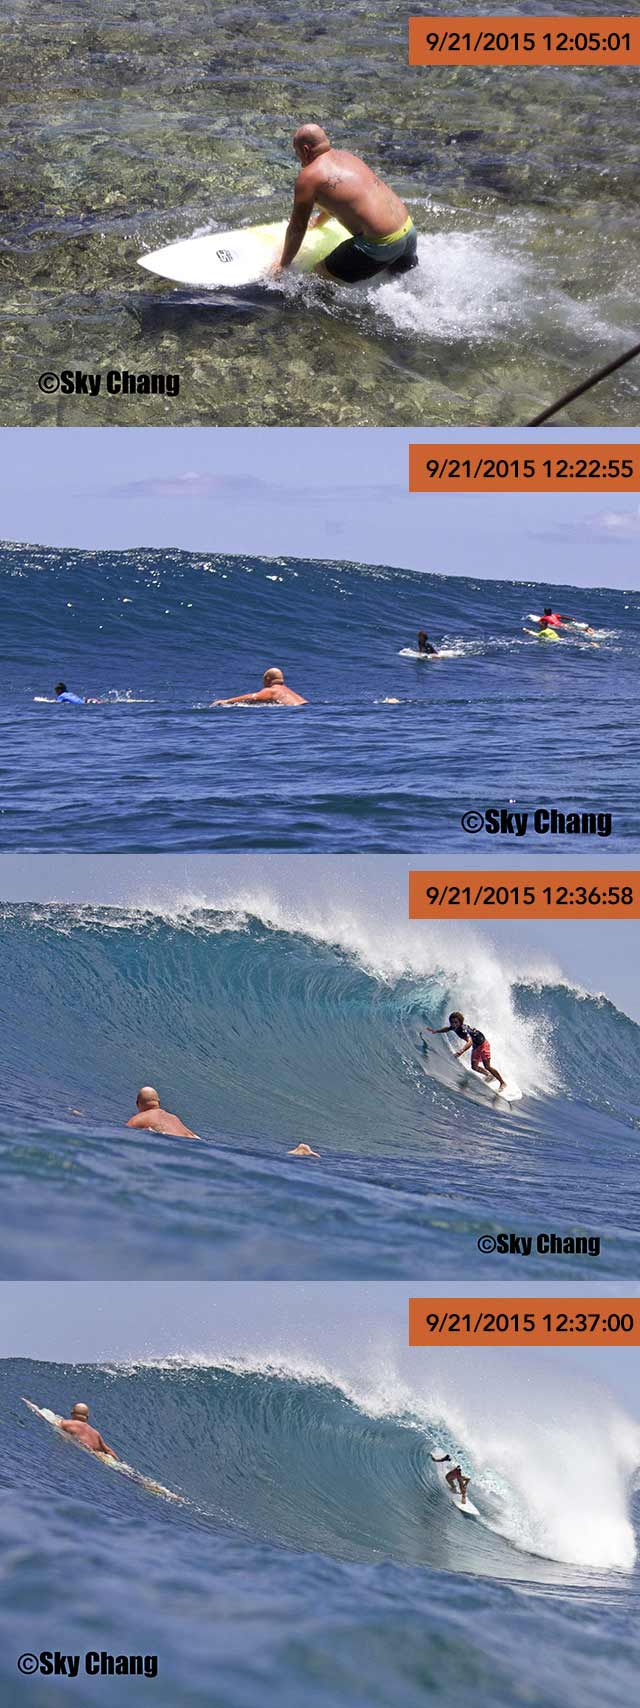 CAUGHT? A series of photos from Sky Chang seemingly show Brent Symes was clearly in the competition area when surfers were competing. Photo from Sky Chang